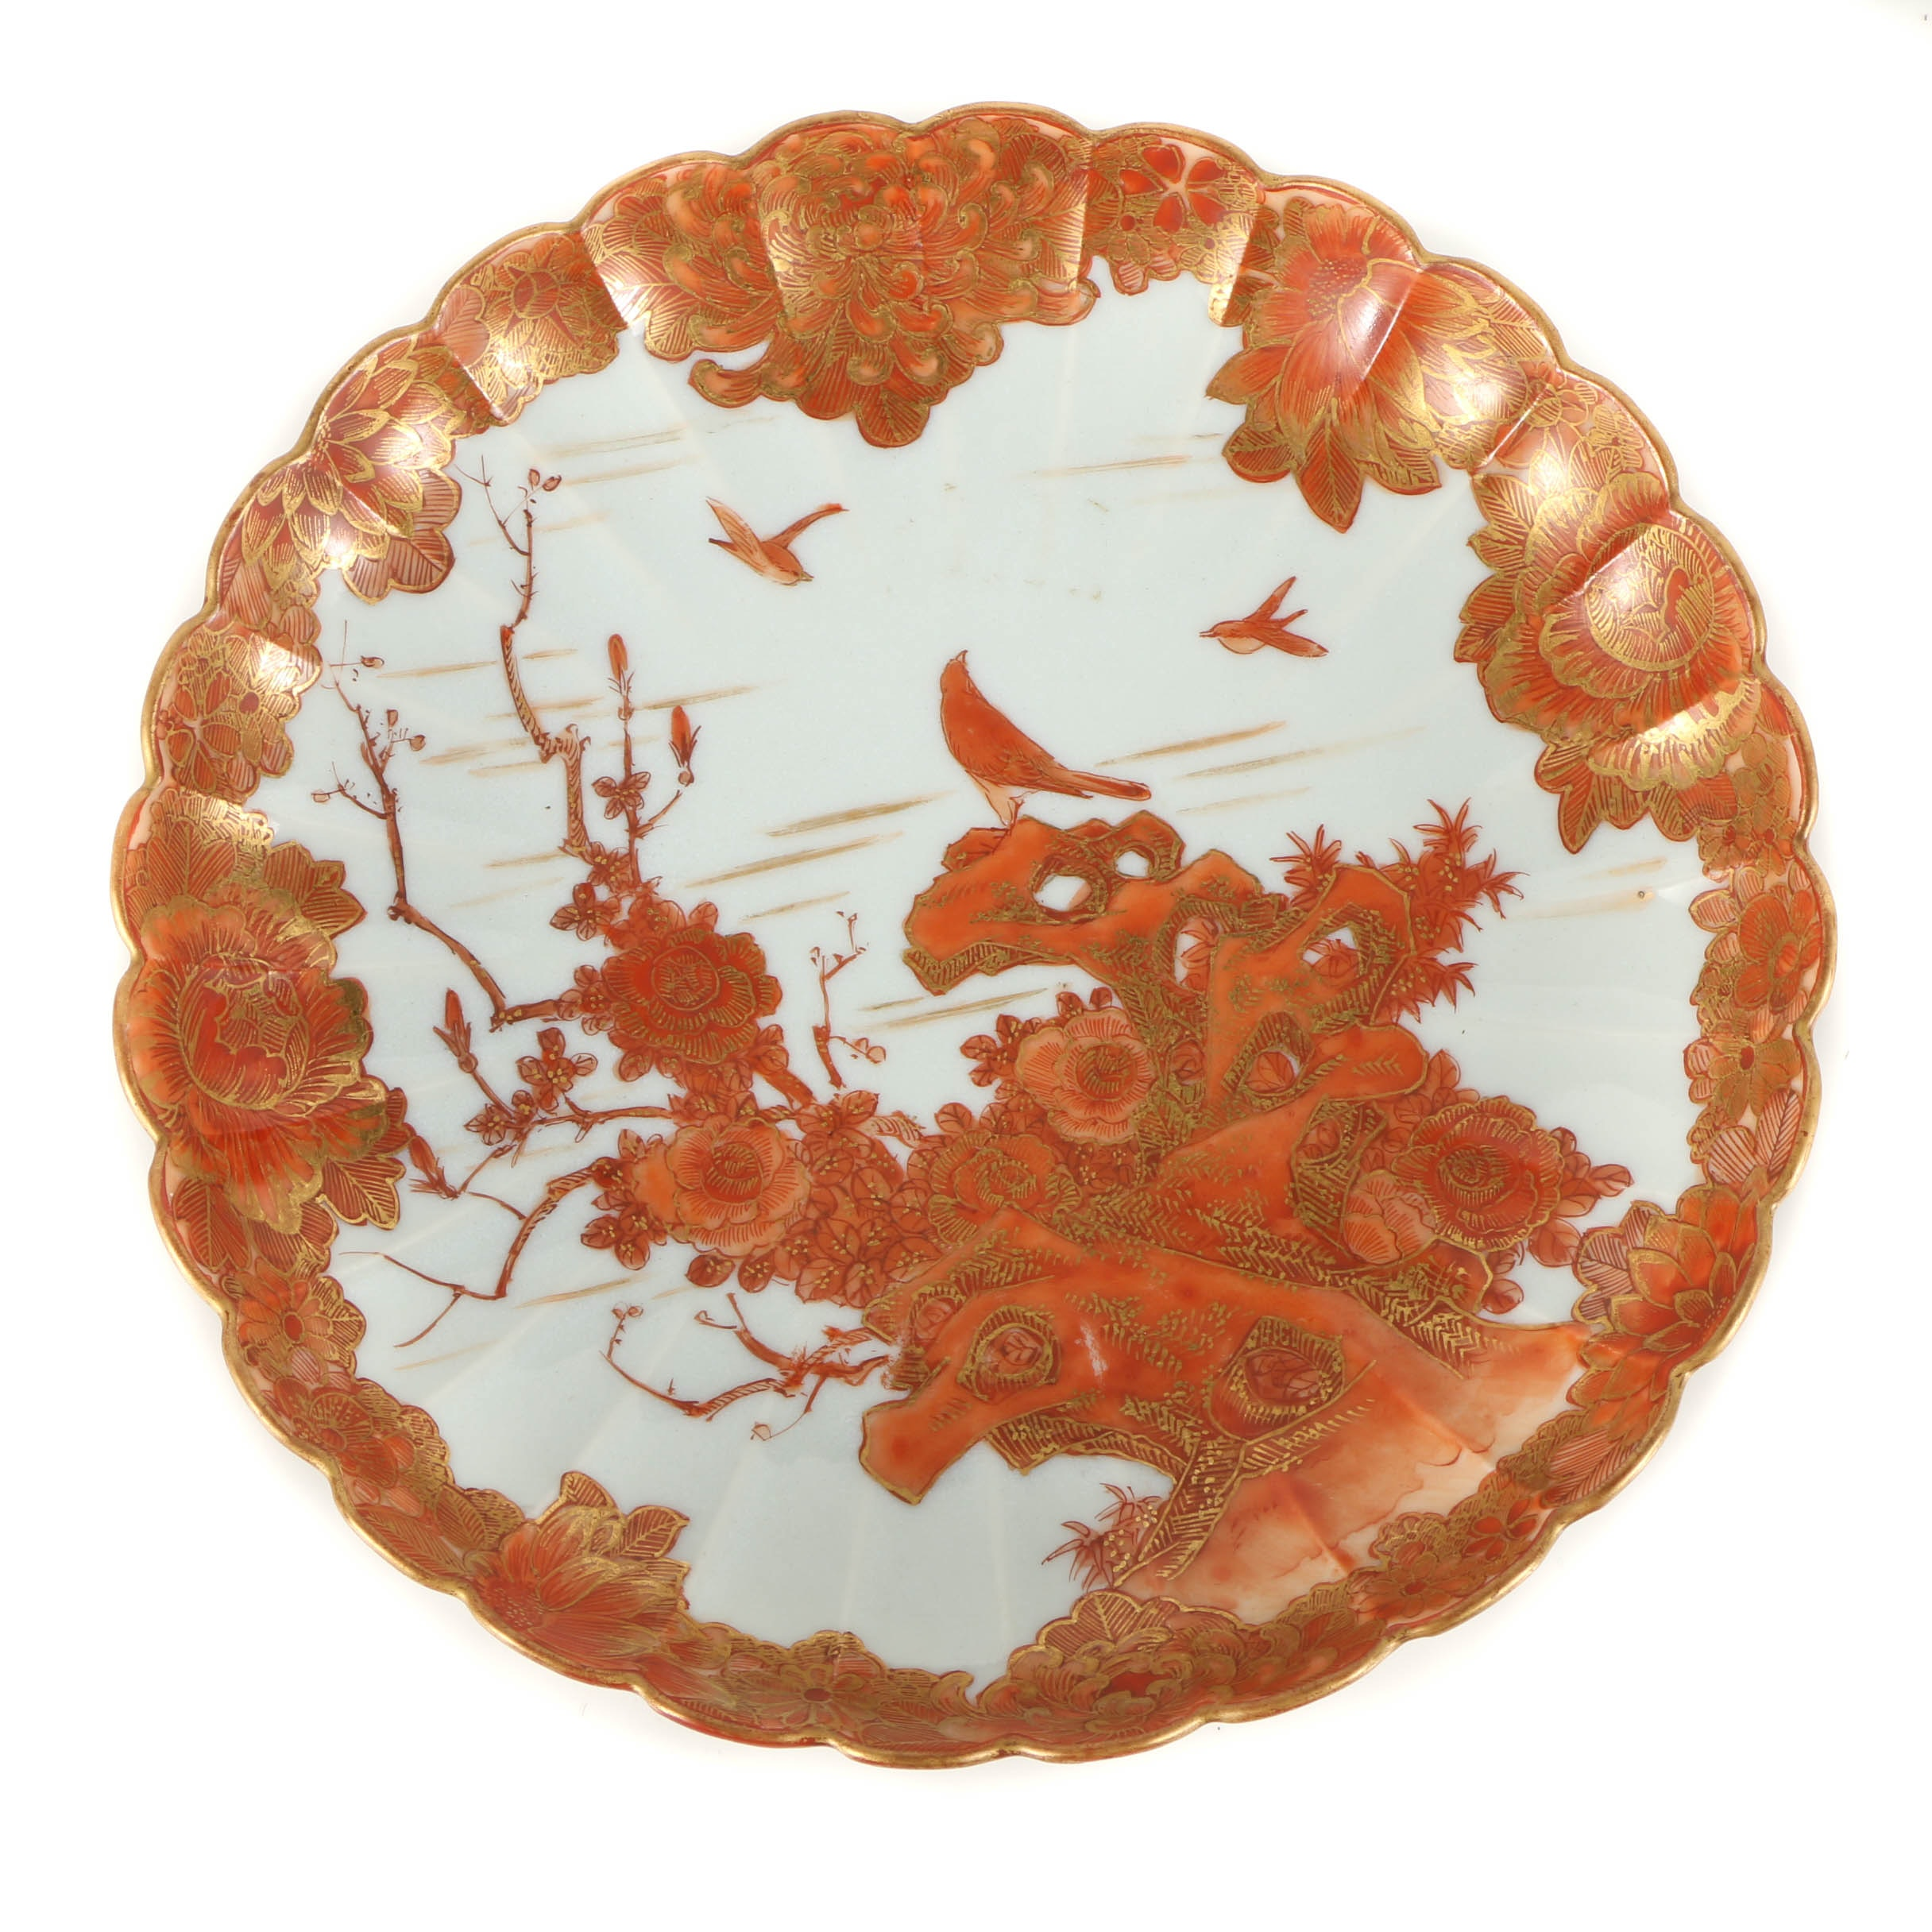 East Asian Enameled Porcelain Decorative Dish